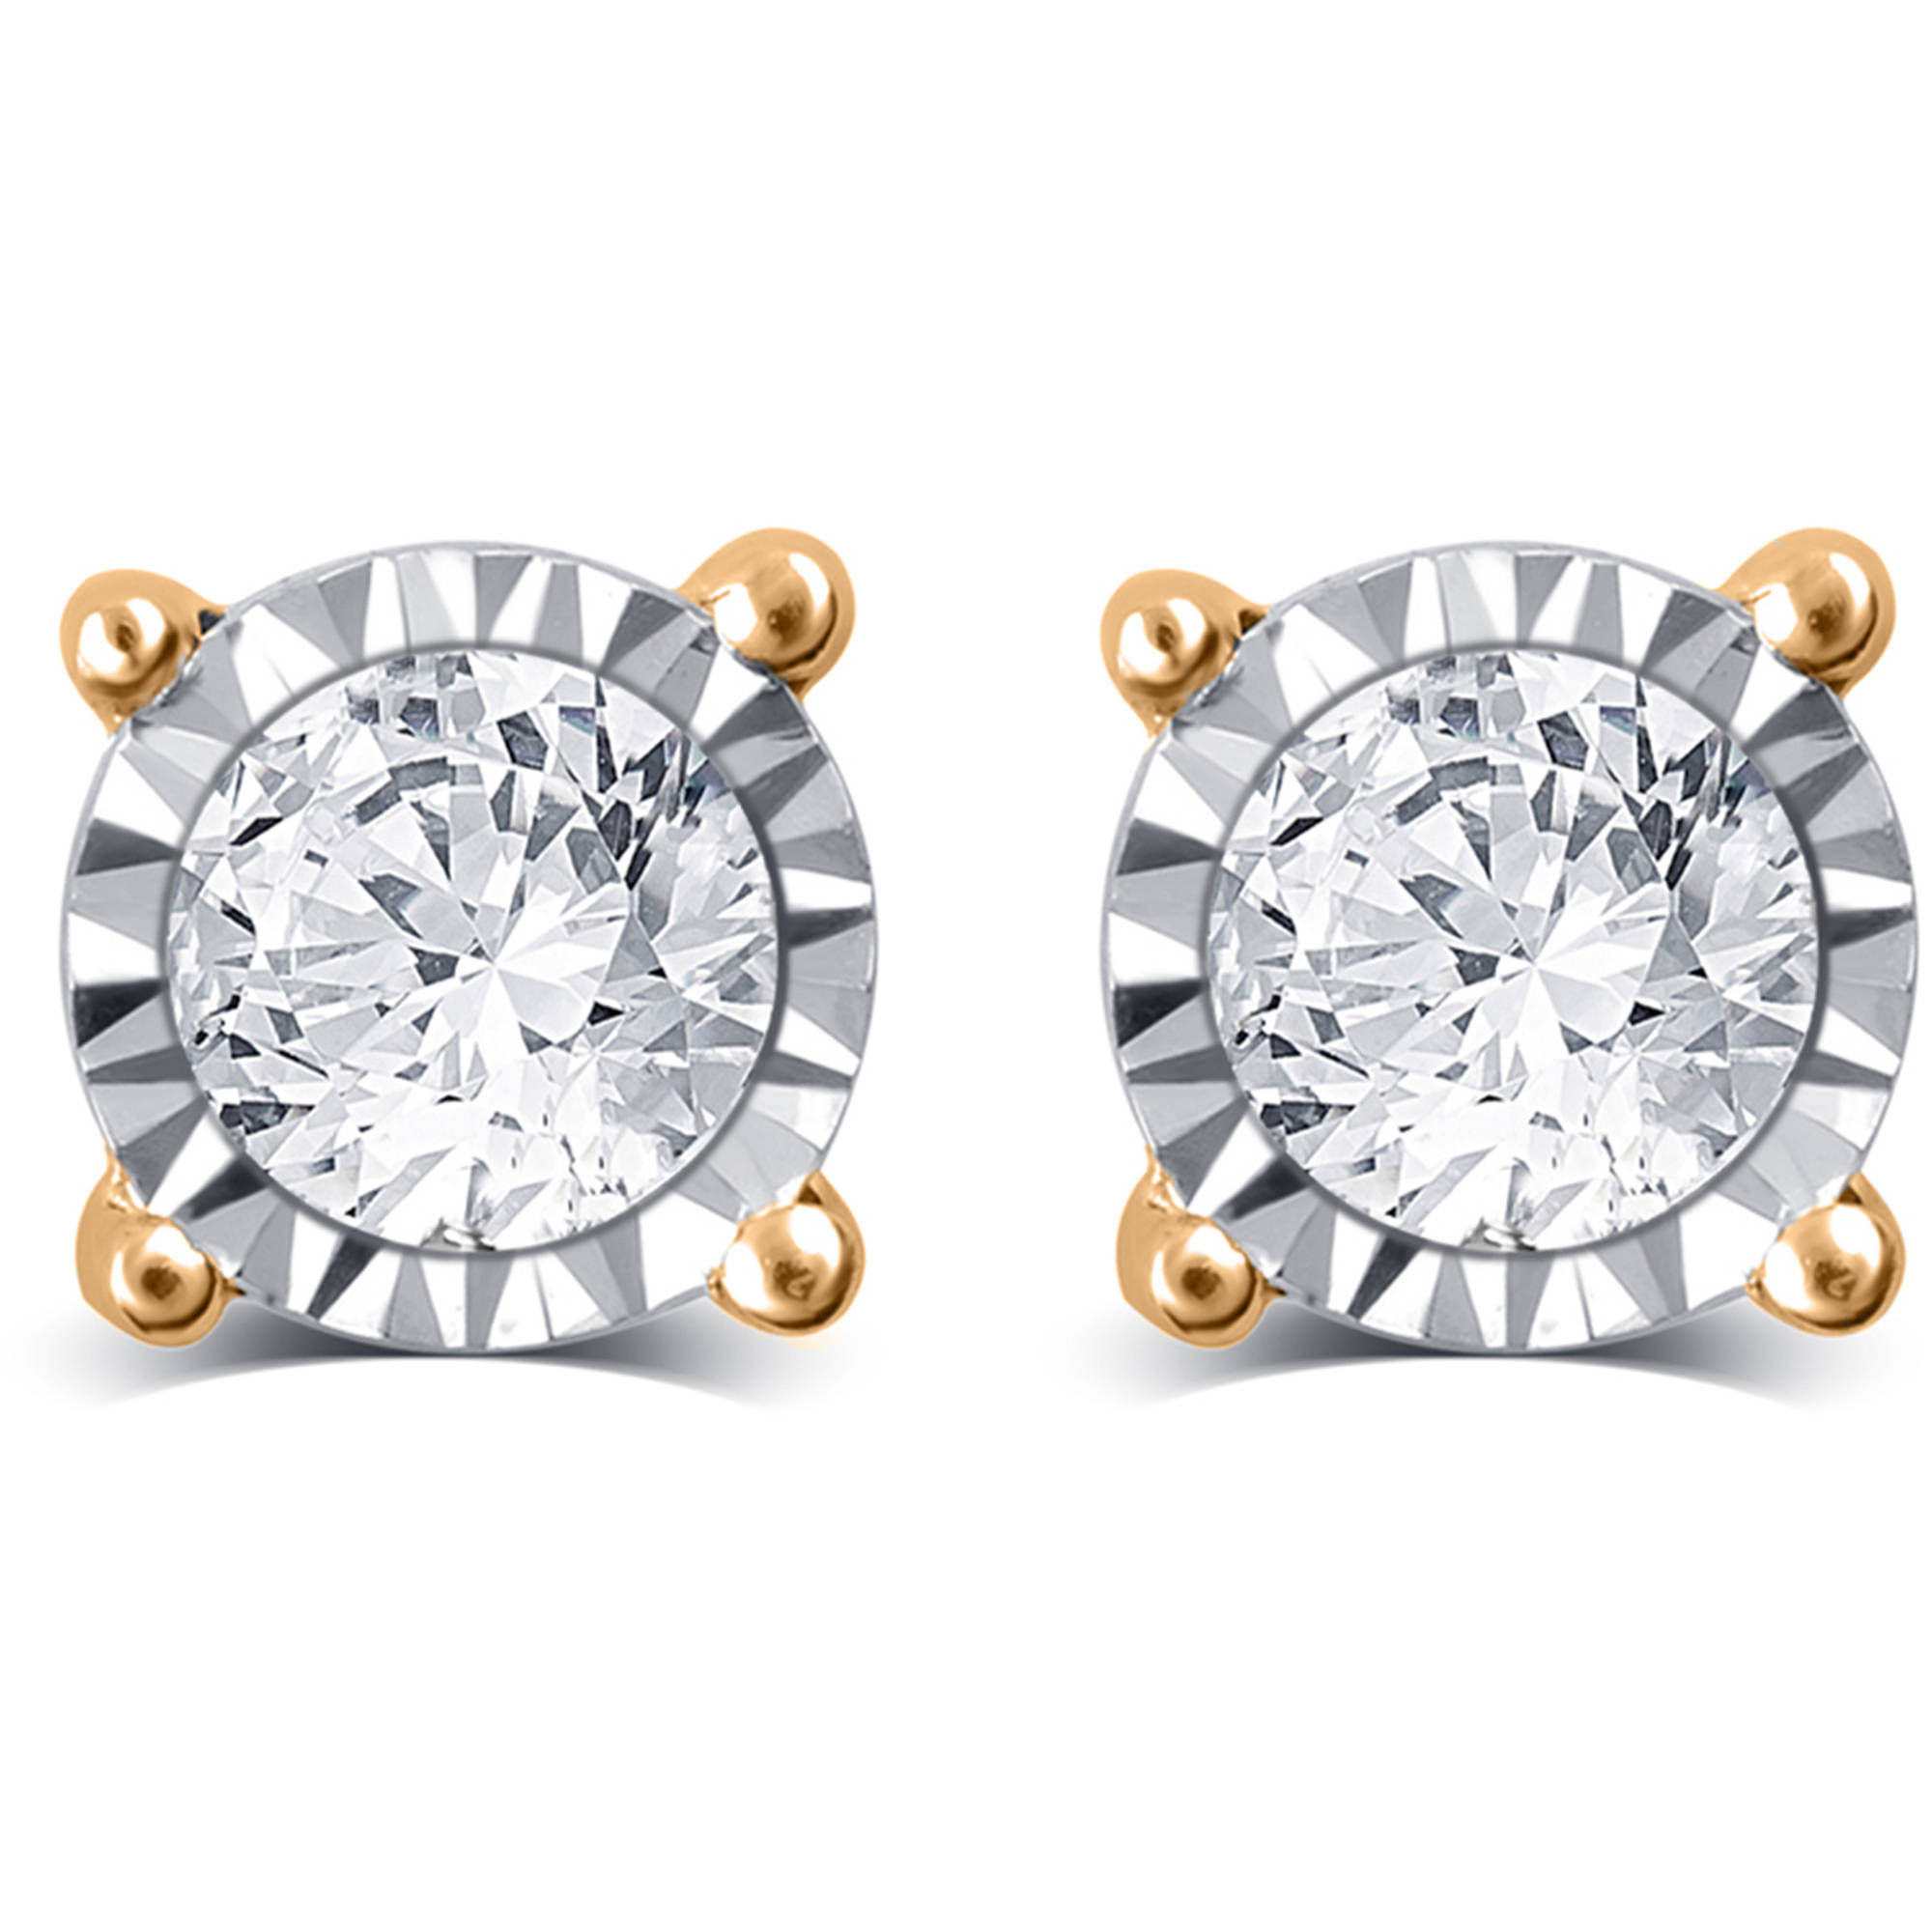 1/4 Carat T.W. Round White Diamond 10kt Yellow Gold Stud Earrings